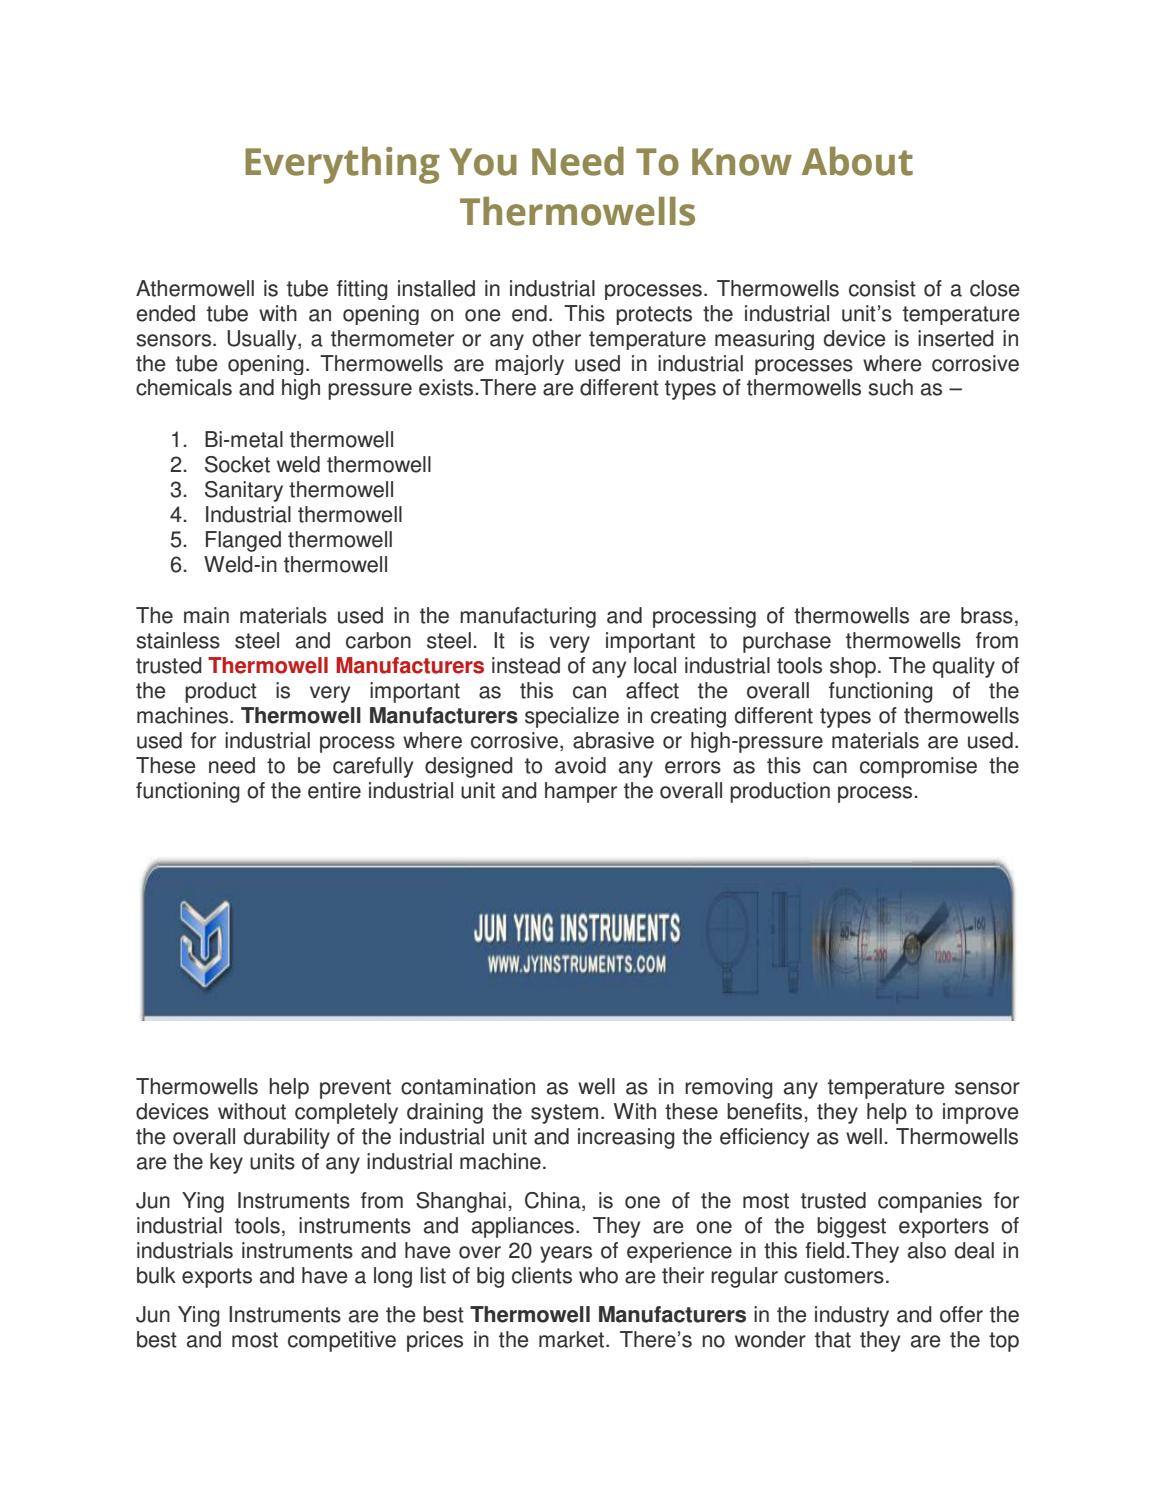 Everything You Need To Know About Thermowells by Shanghai